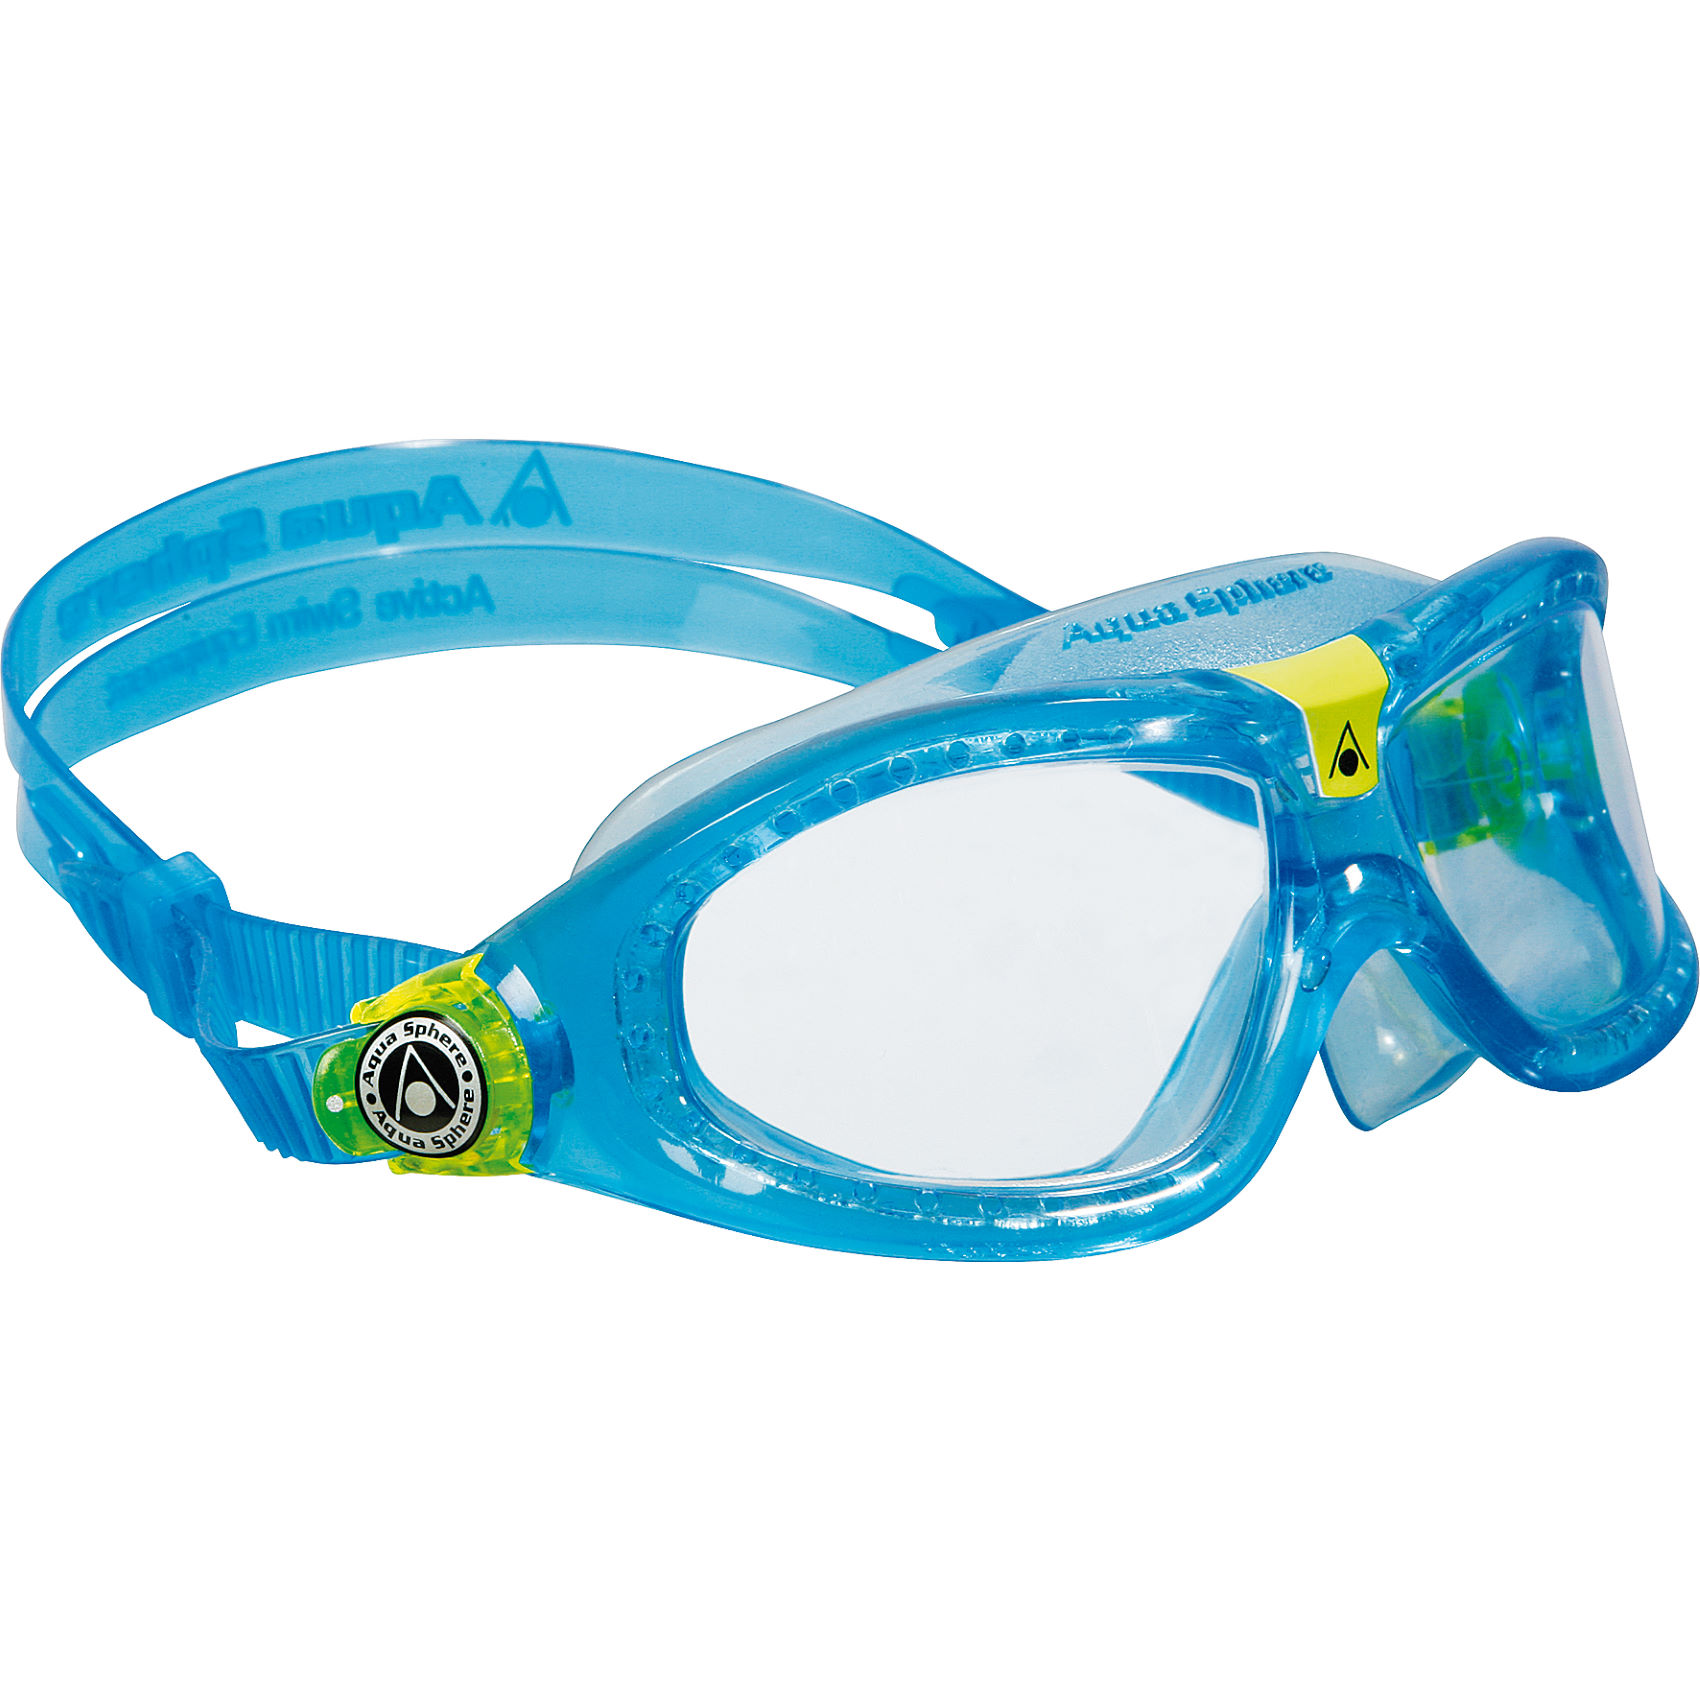 Clear Lens Glasses Nz